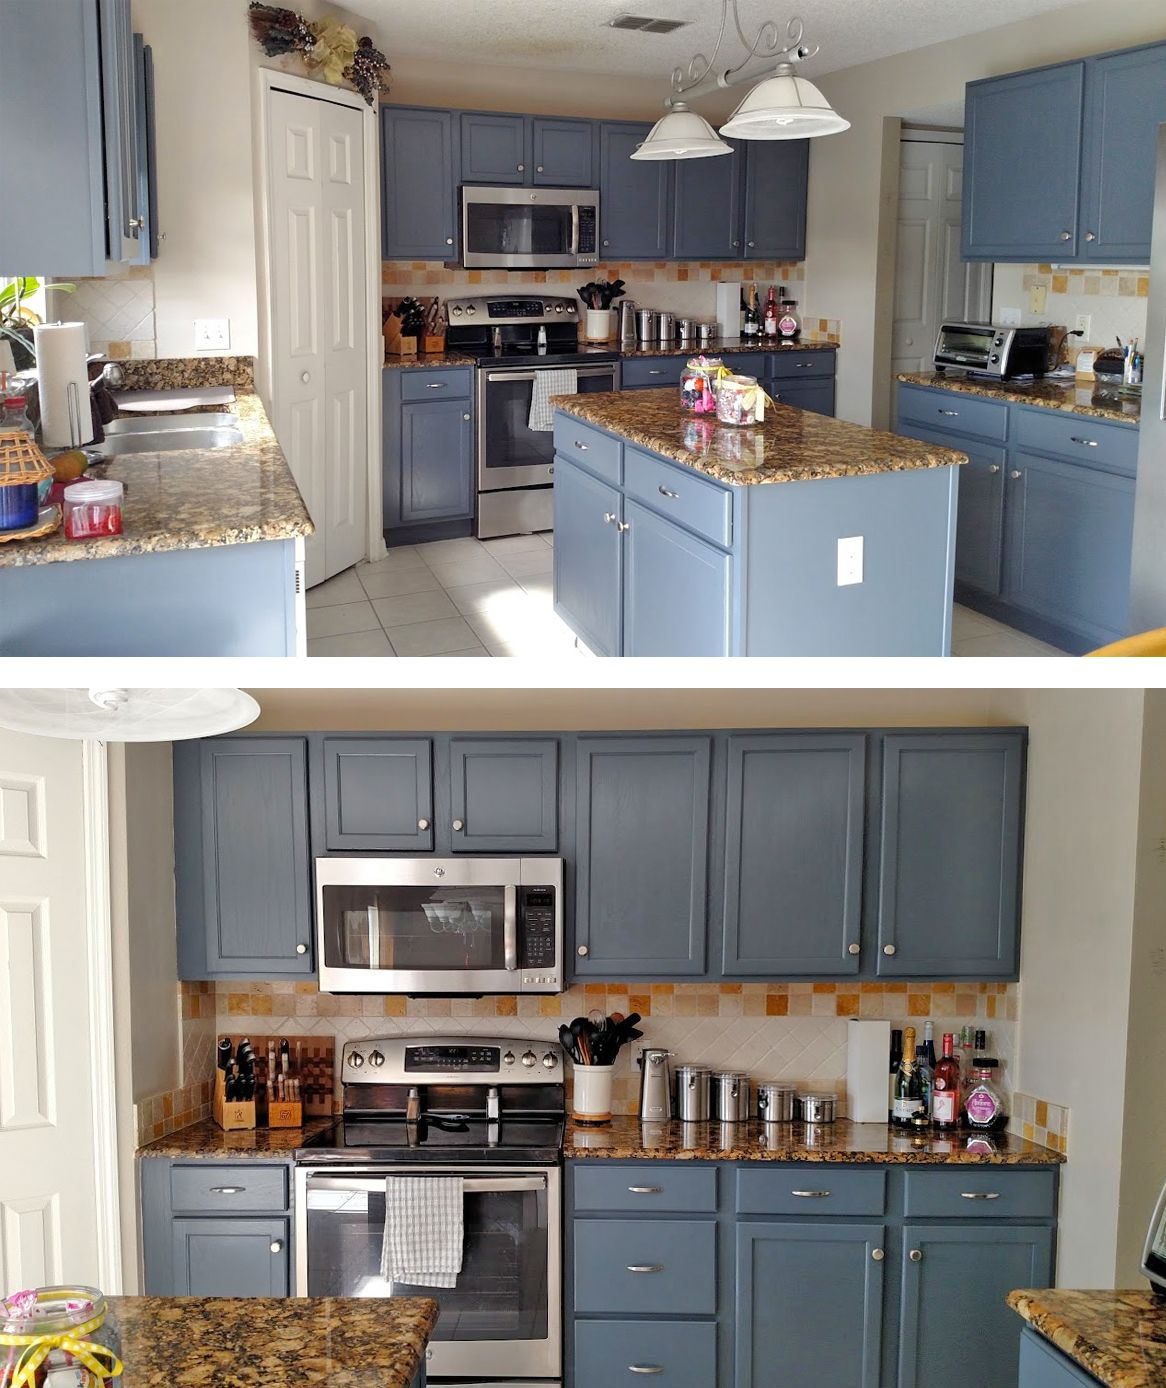 Kitchen Cabinets Stained Light: Grey Gel Stain Over Oak Cabinets